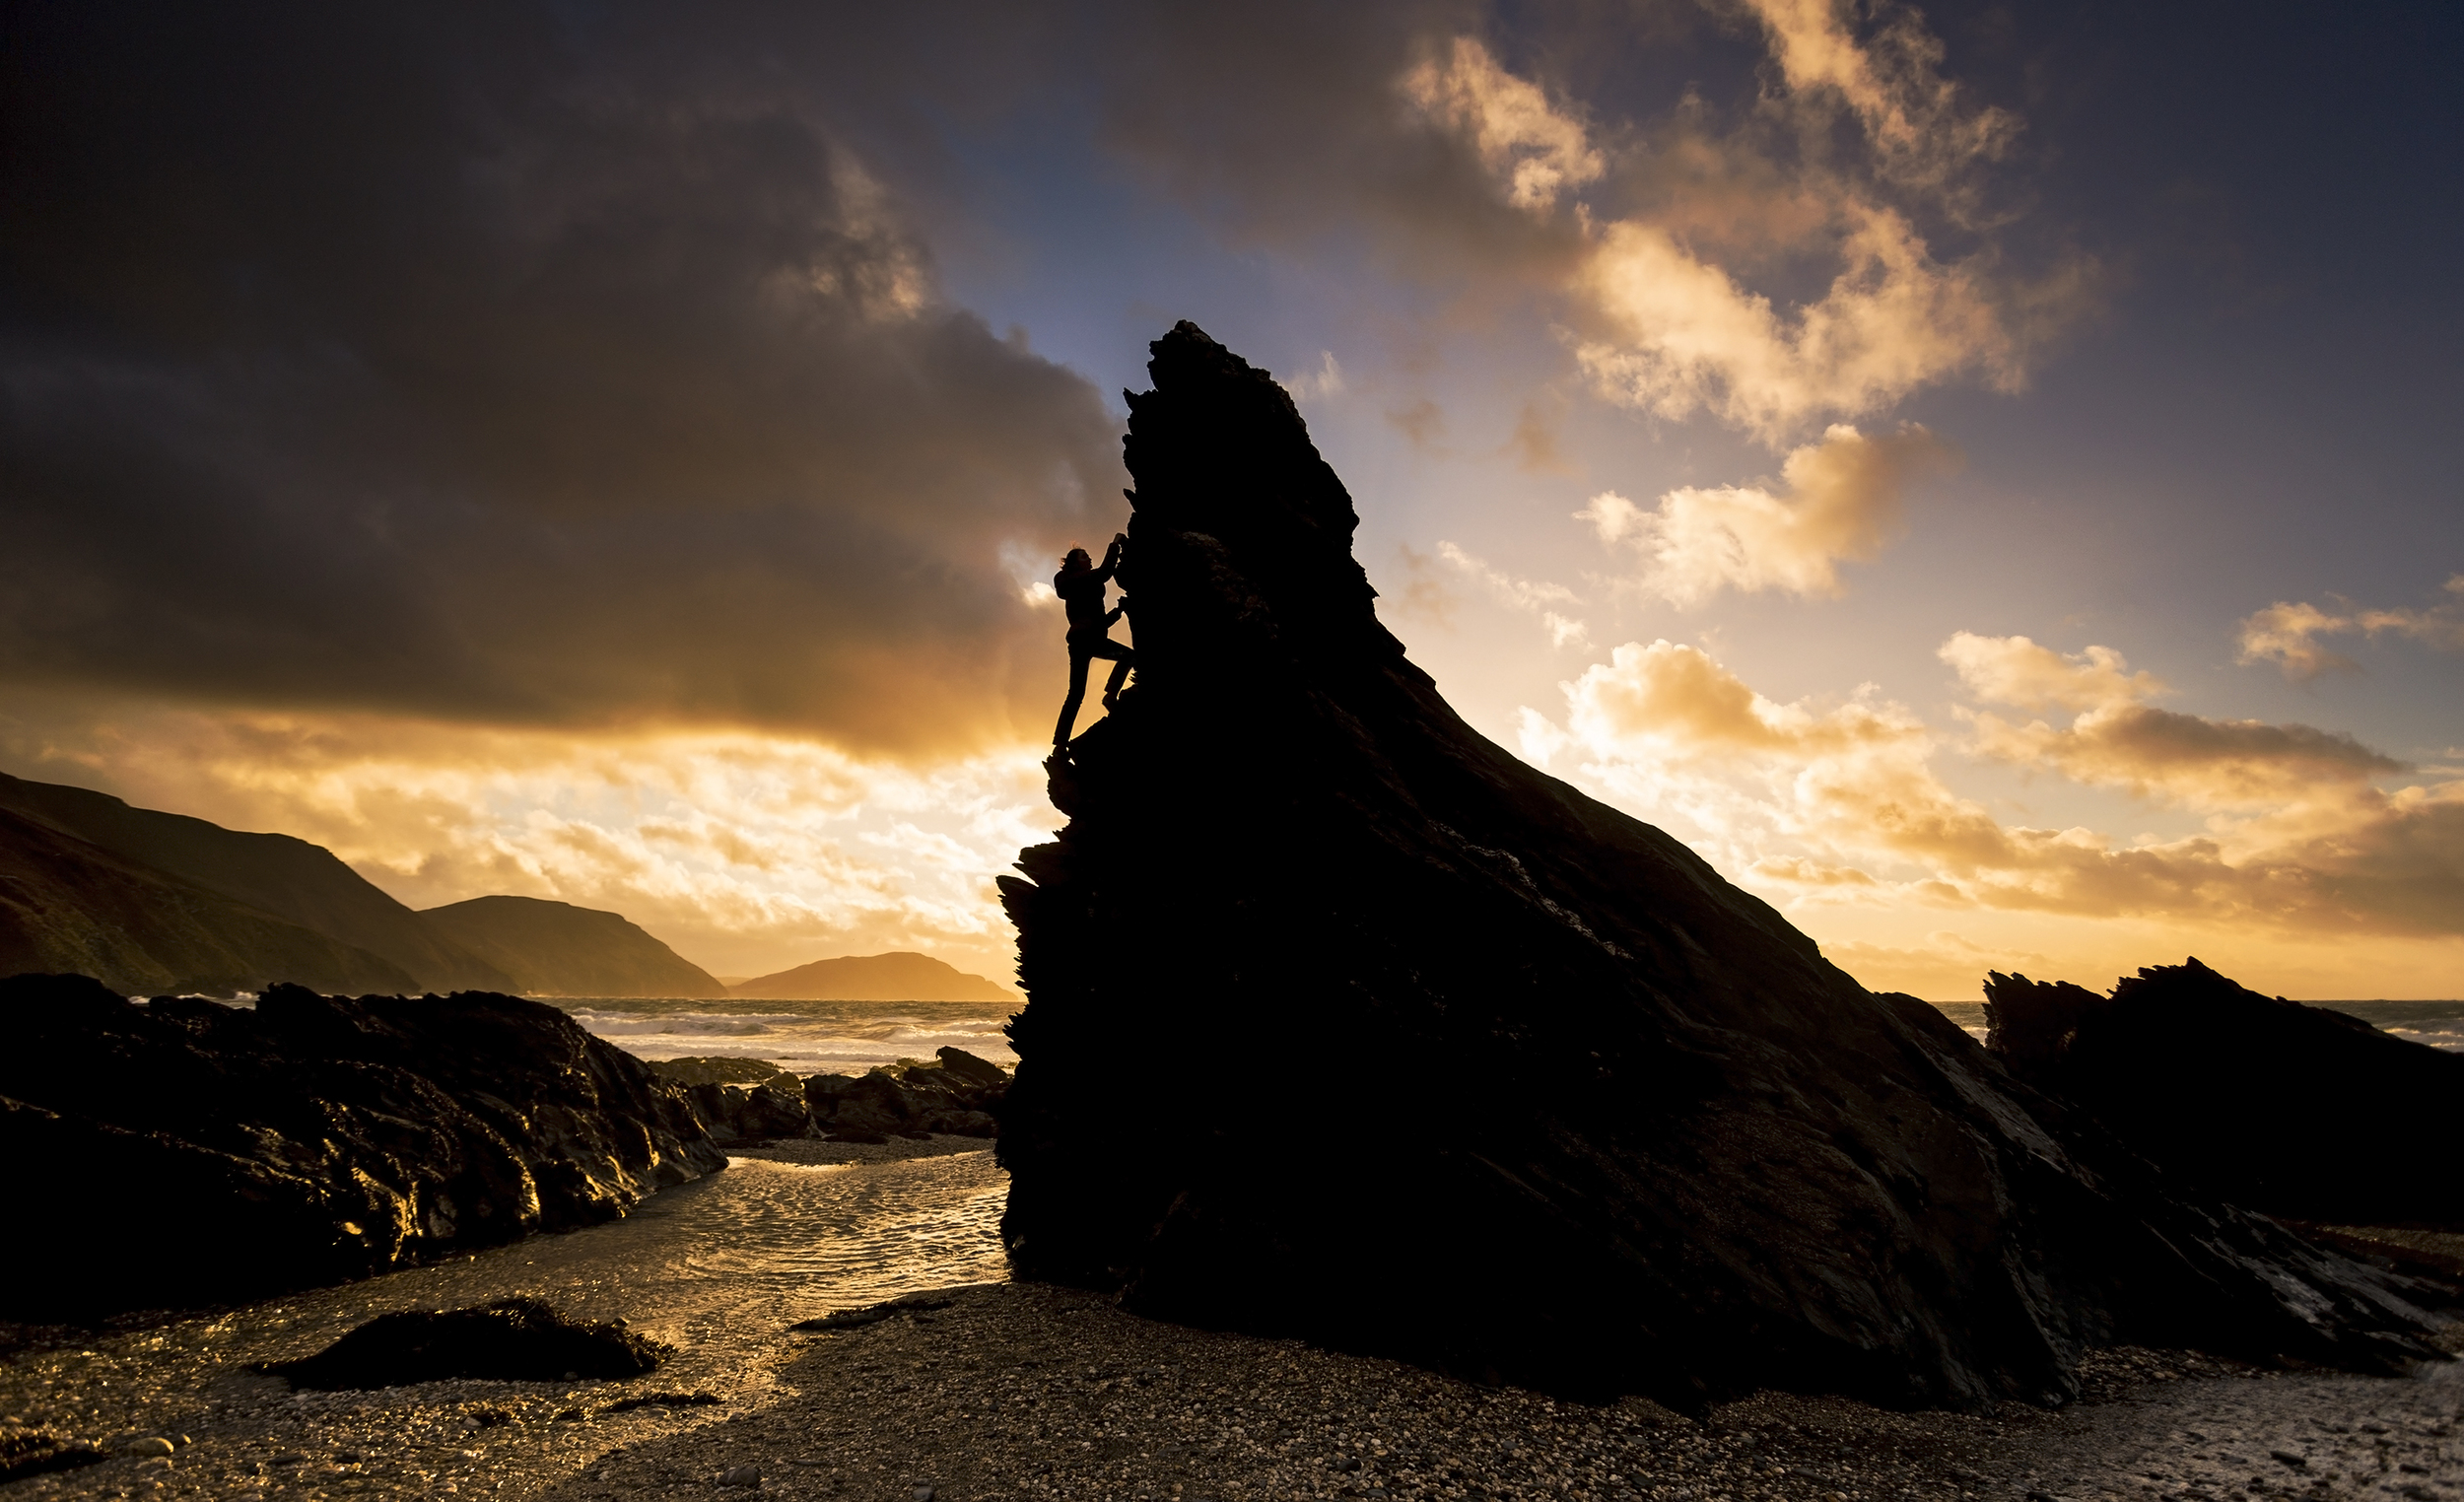 Bouldering at White Beach on the Isle of Man.